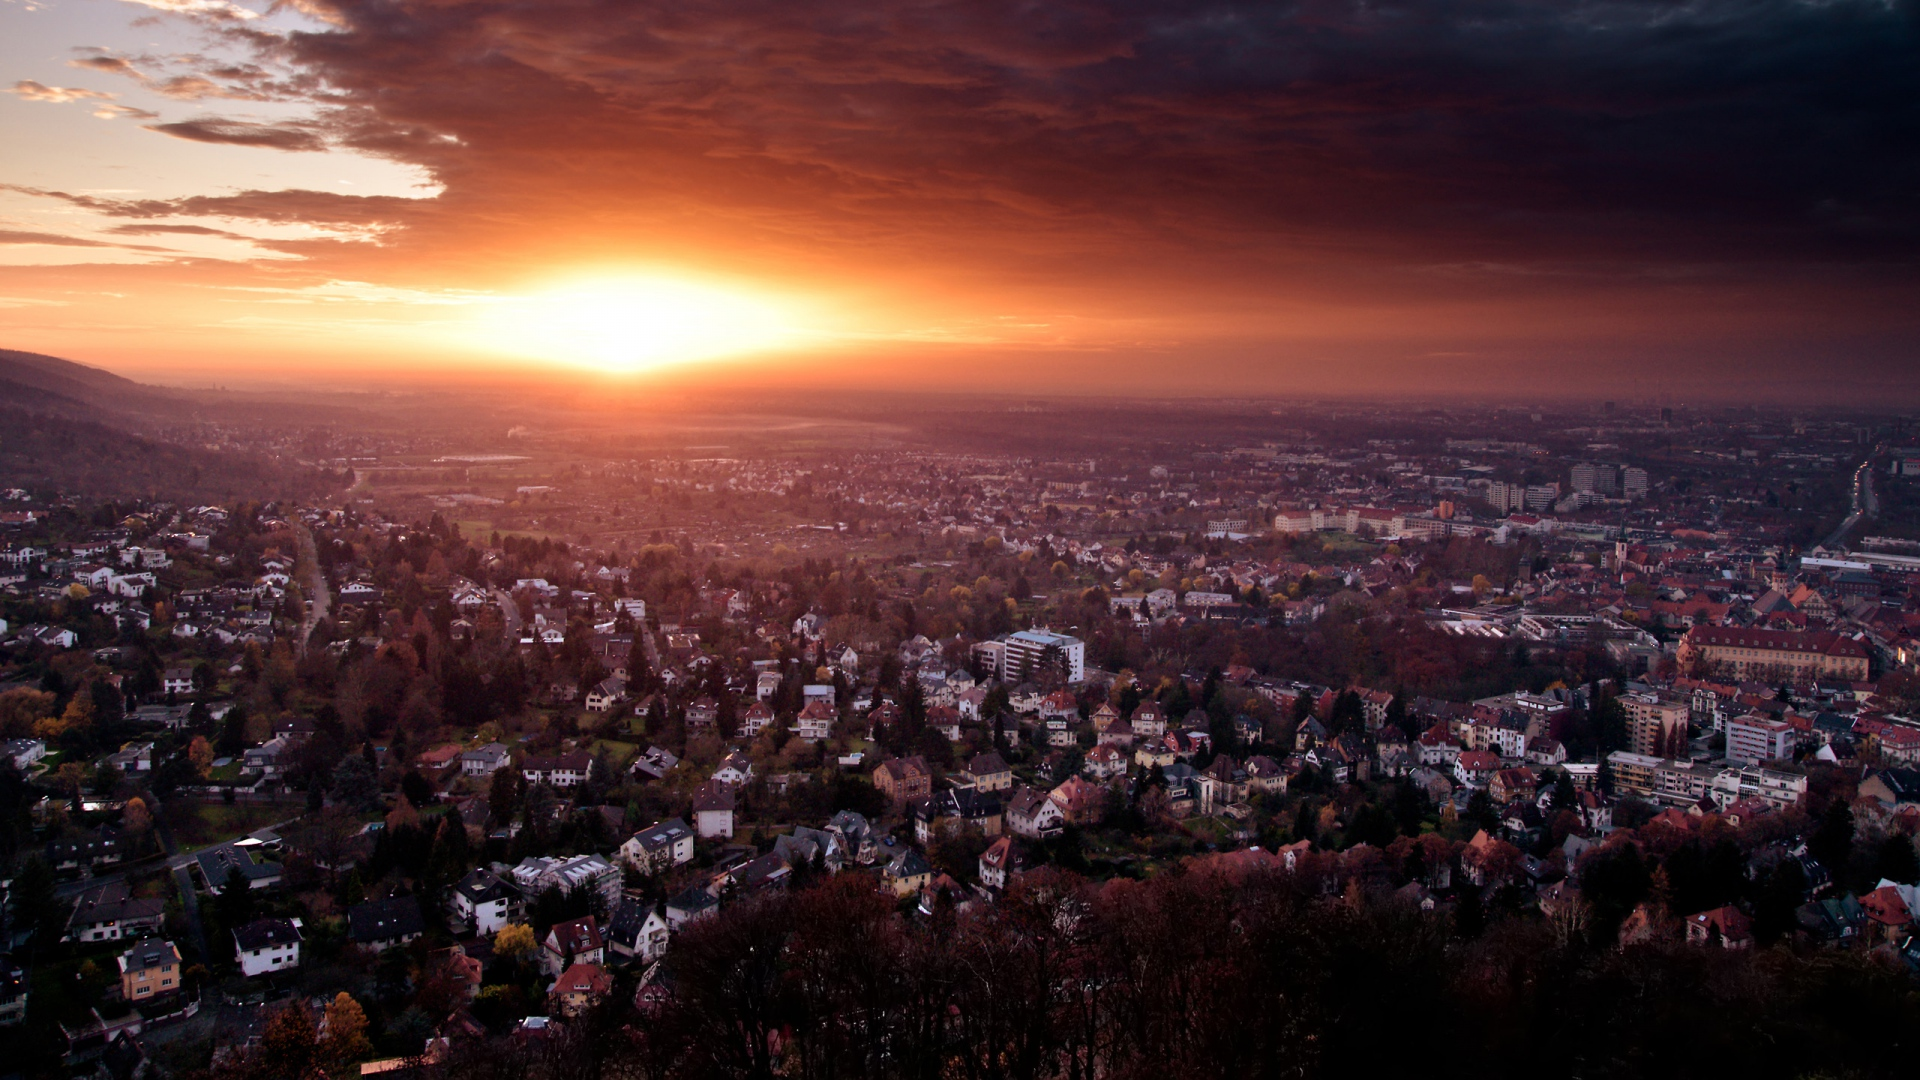 Download Wallpaper 1920x1080 Germany Sunset City End Of Day Full